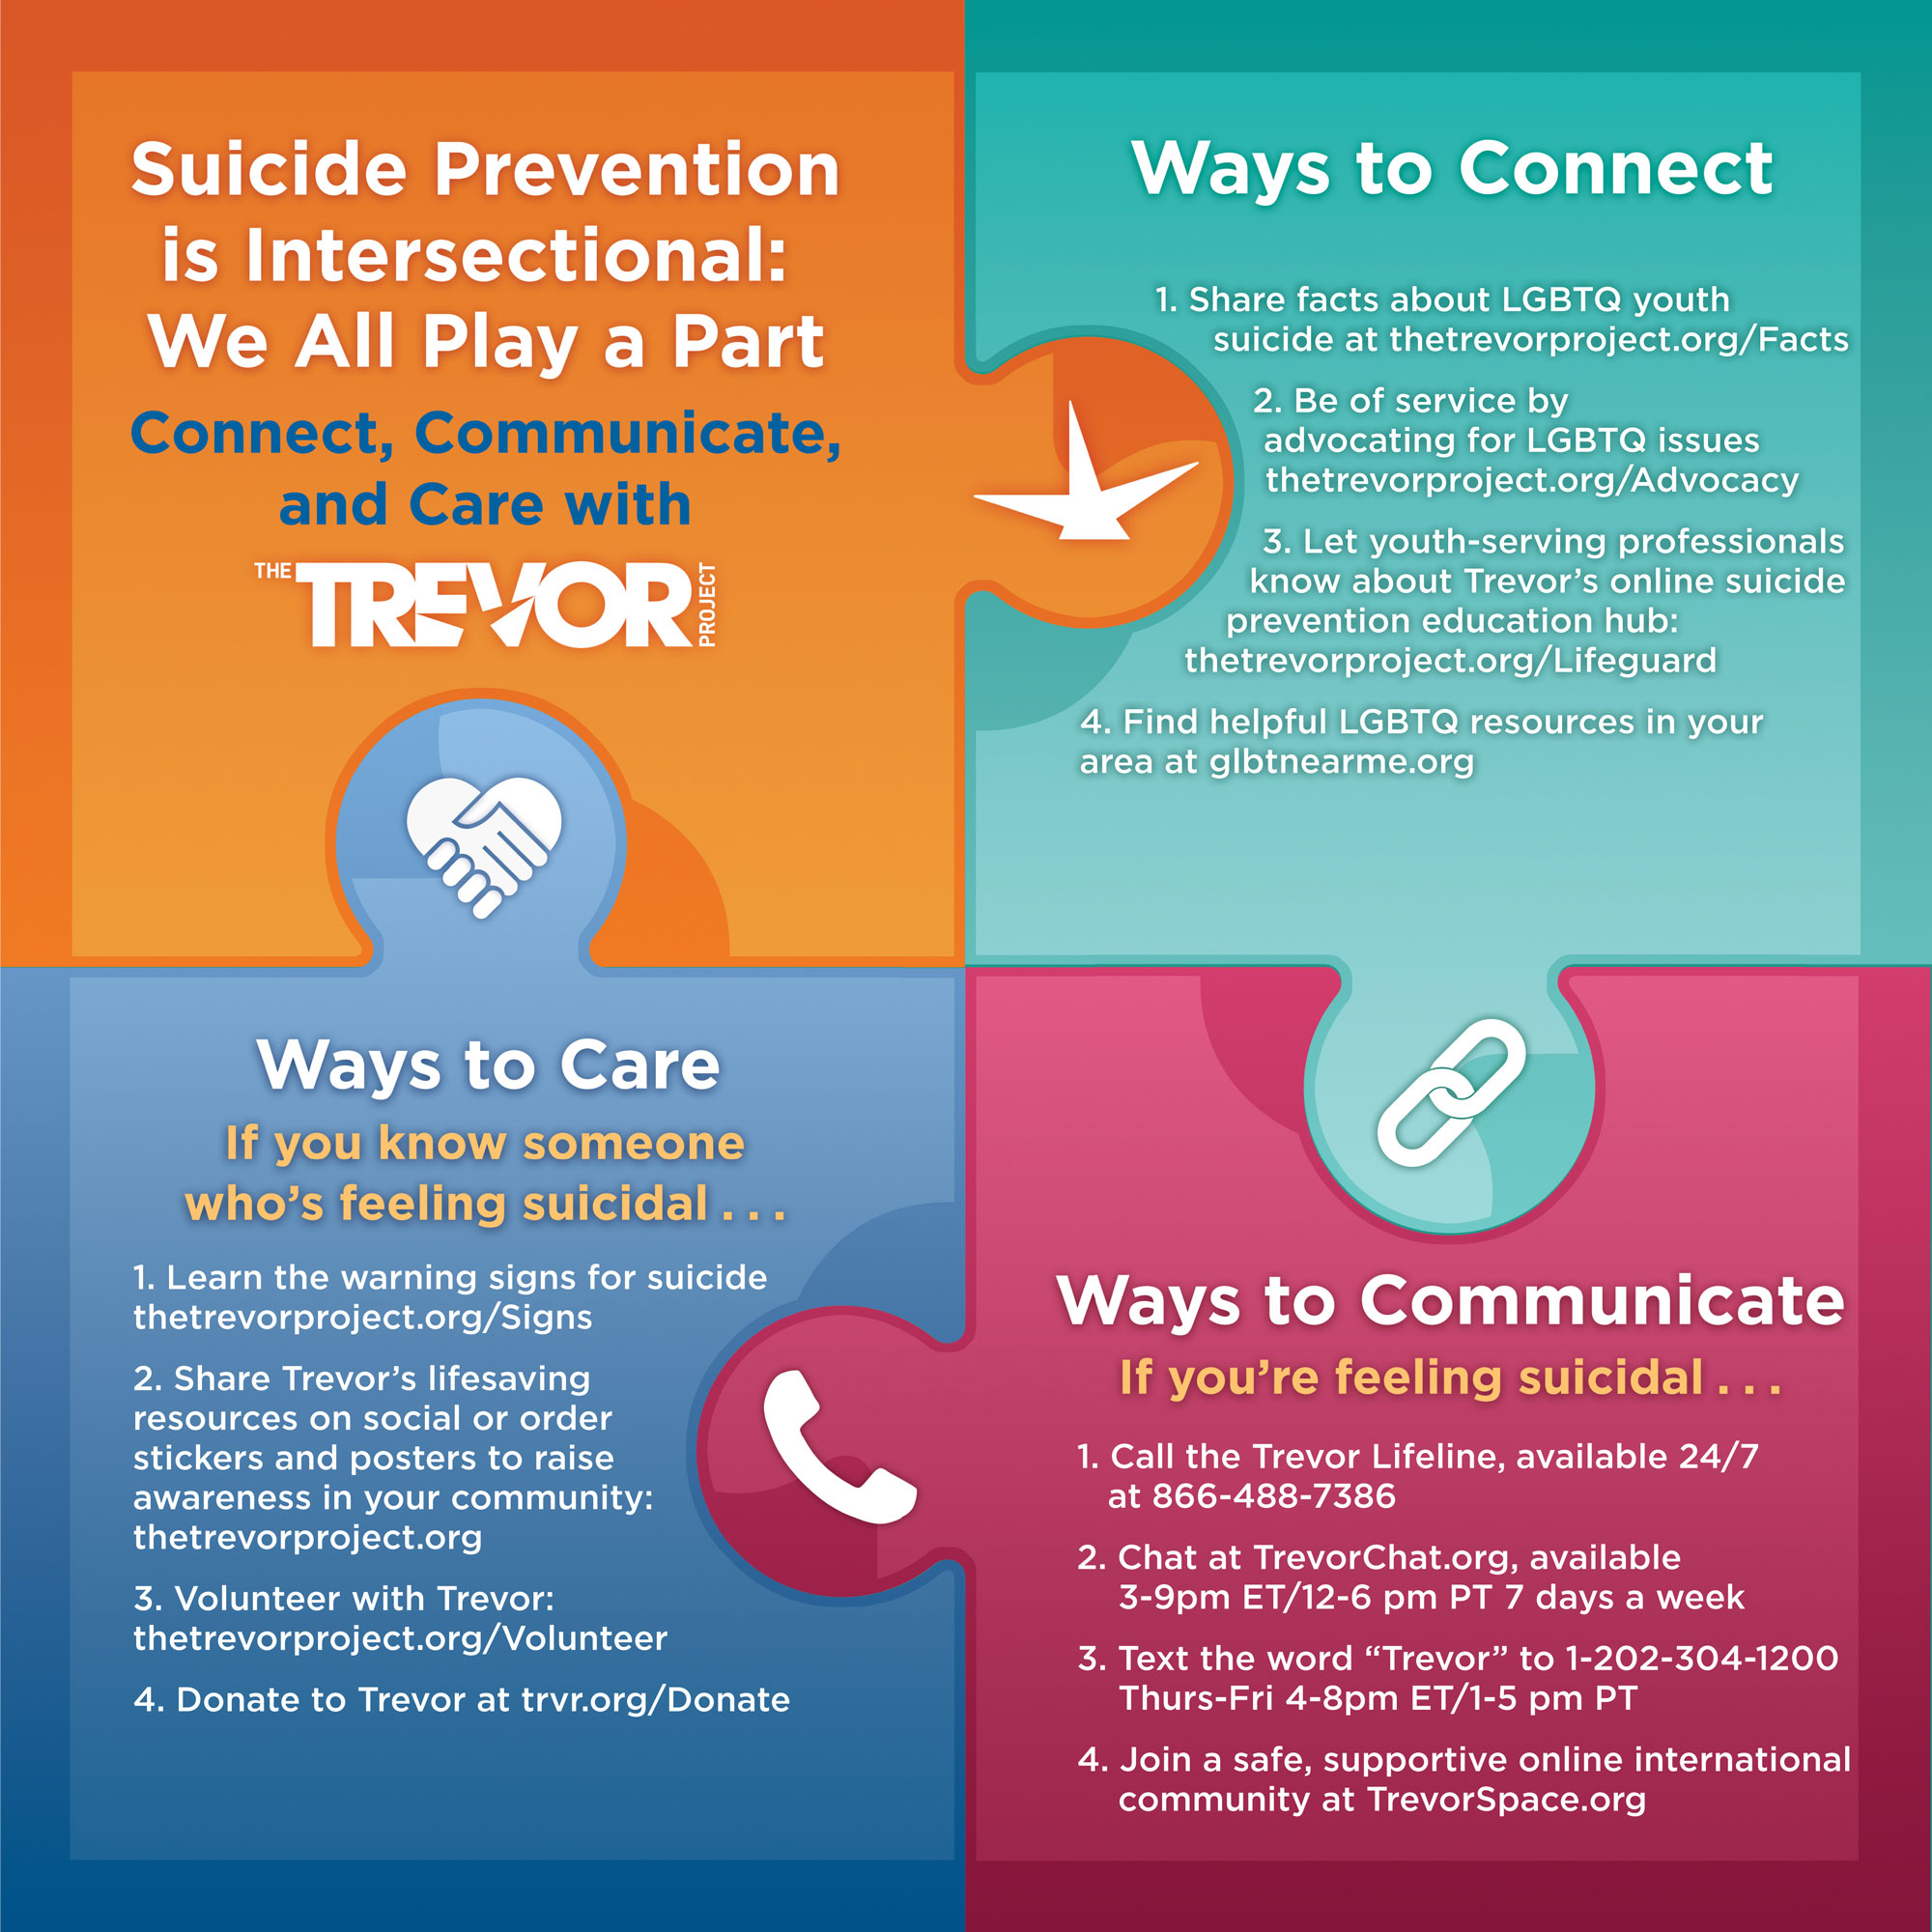 suicide_prevention_poster4.jpg